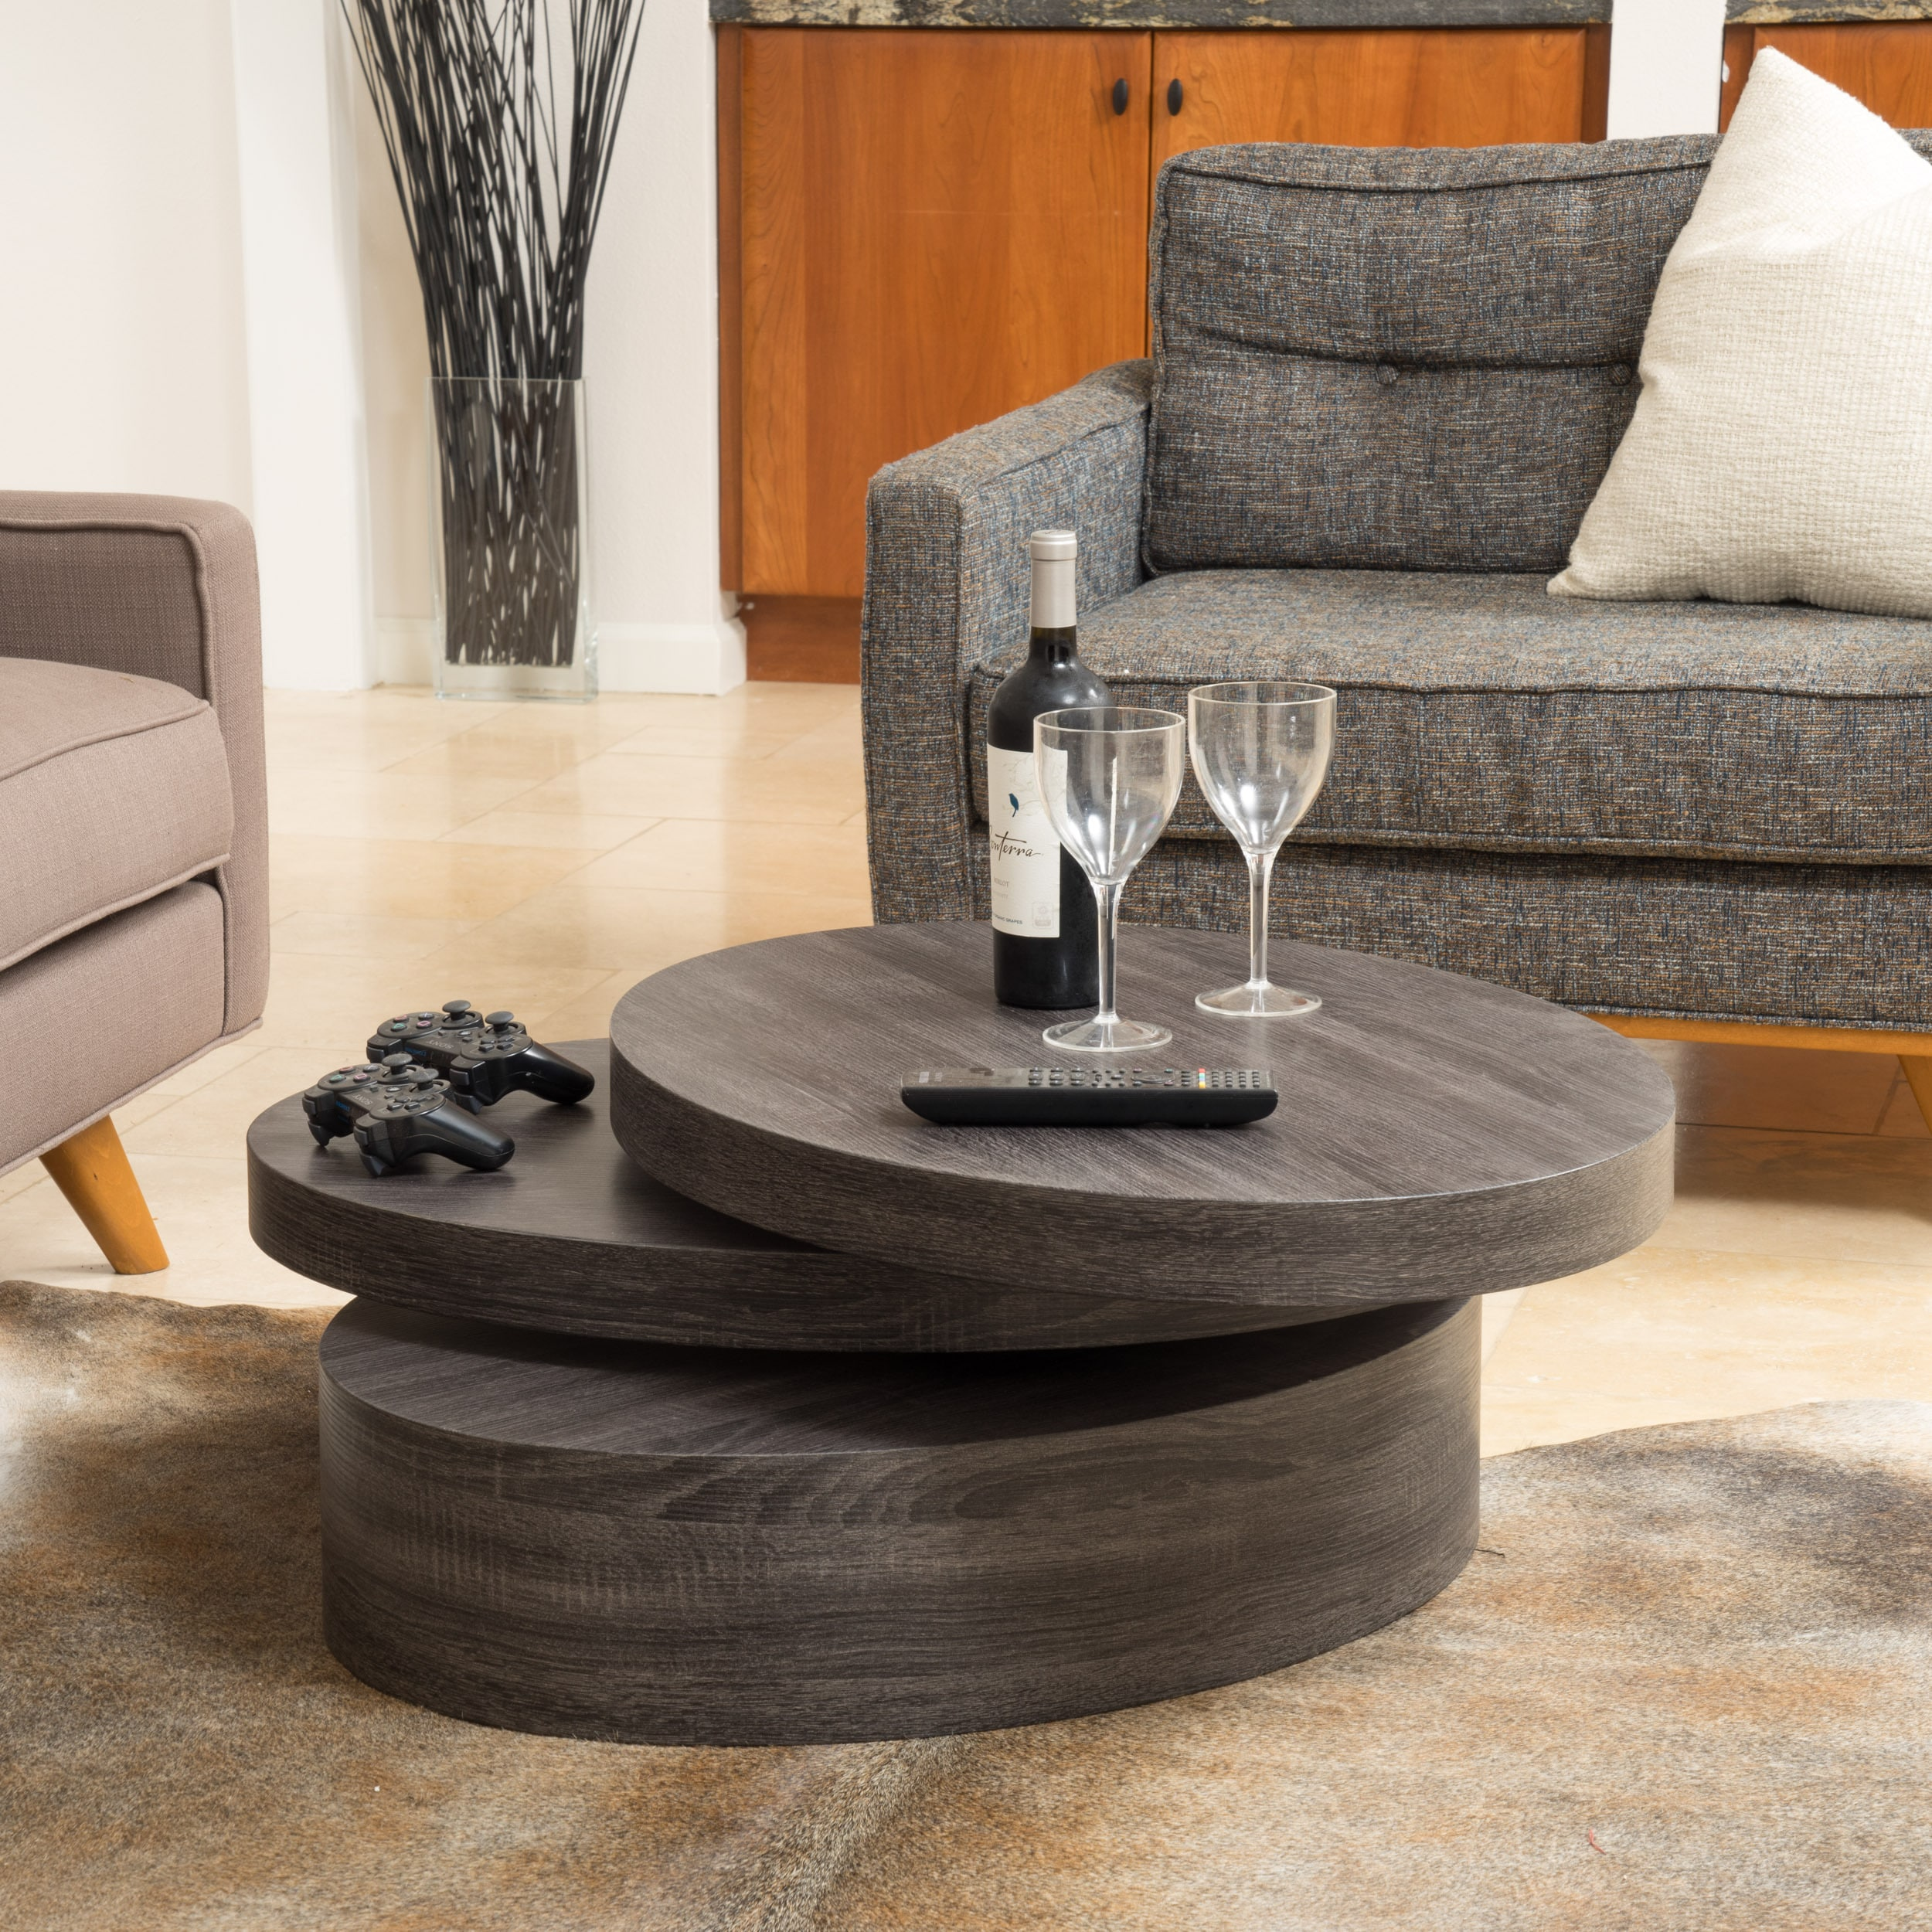 Oval Rotating Coffee Table: Carson Oval Mod Rotating Wood Coffee Table By Christopher